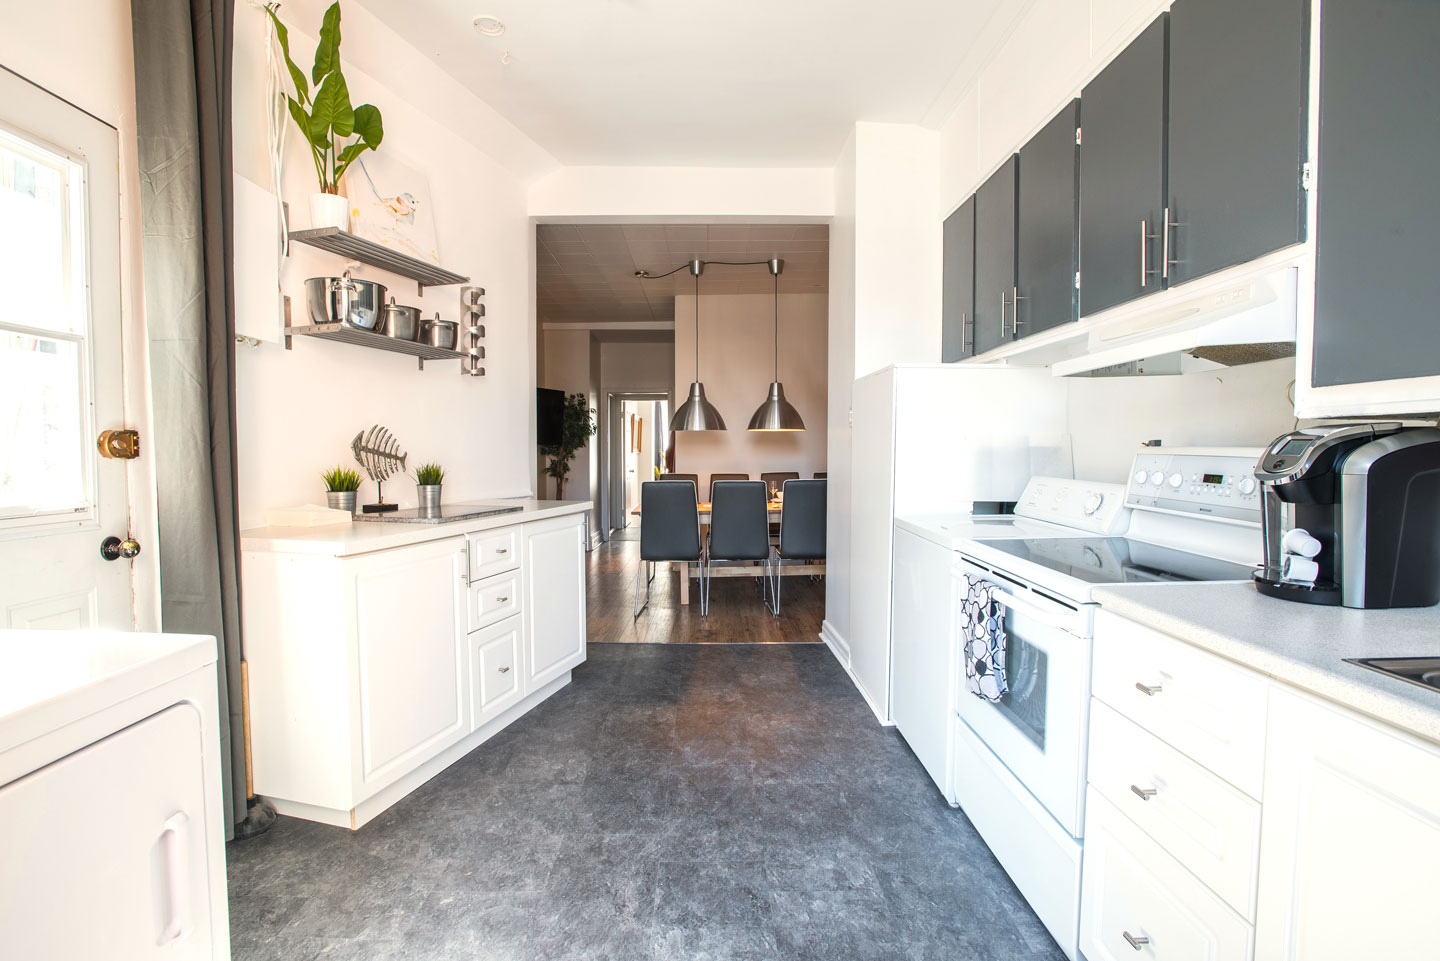 Mtl Zoo: fully equipped kitchen with washer and dryer